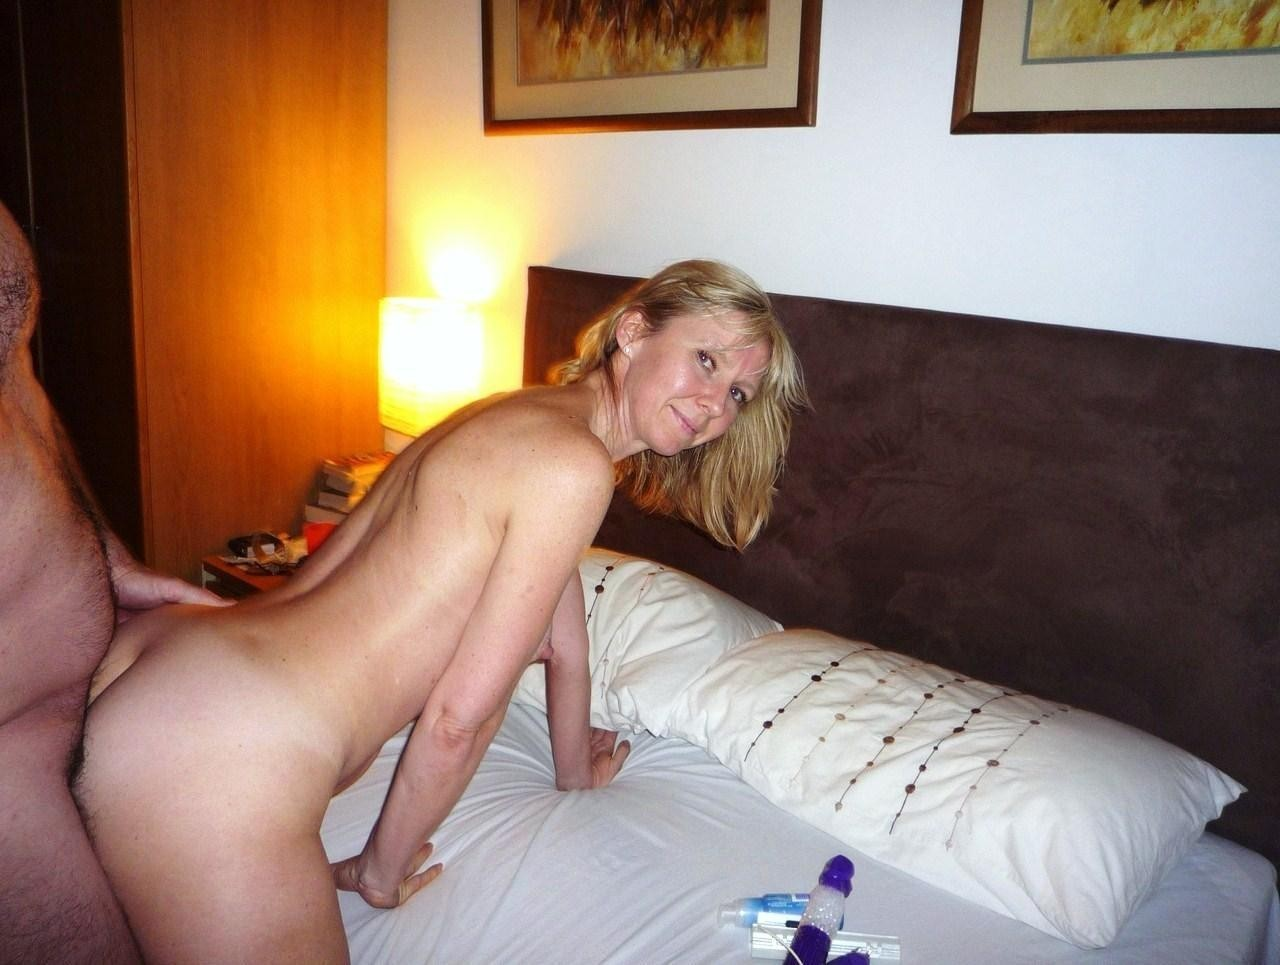 hilton-ameture-nude-wife-videos